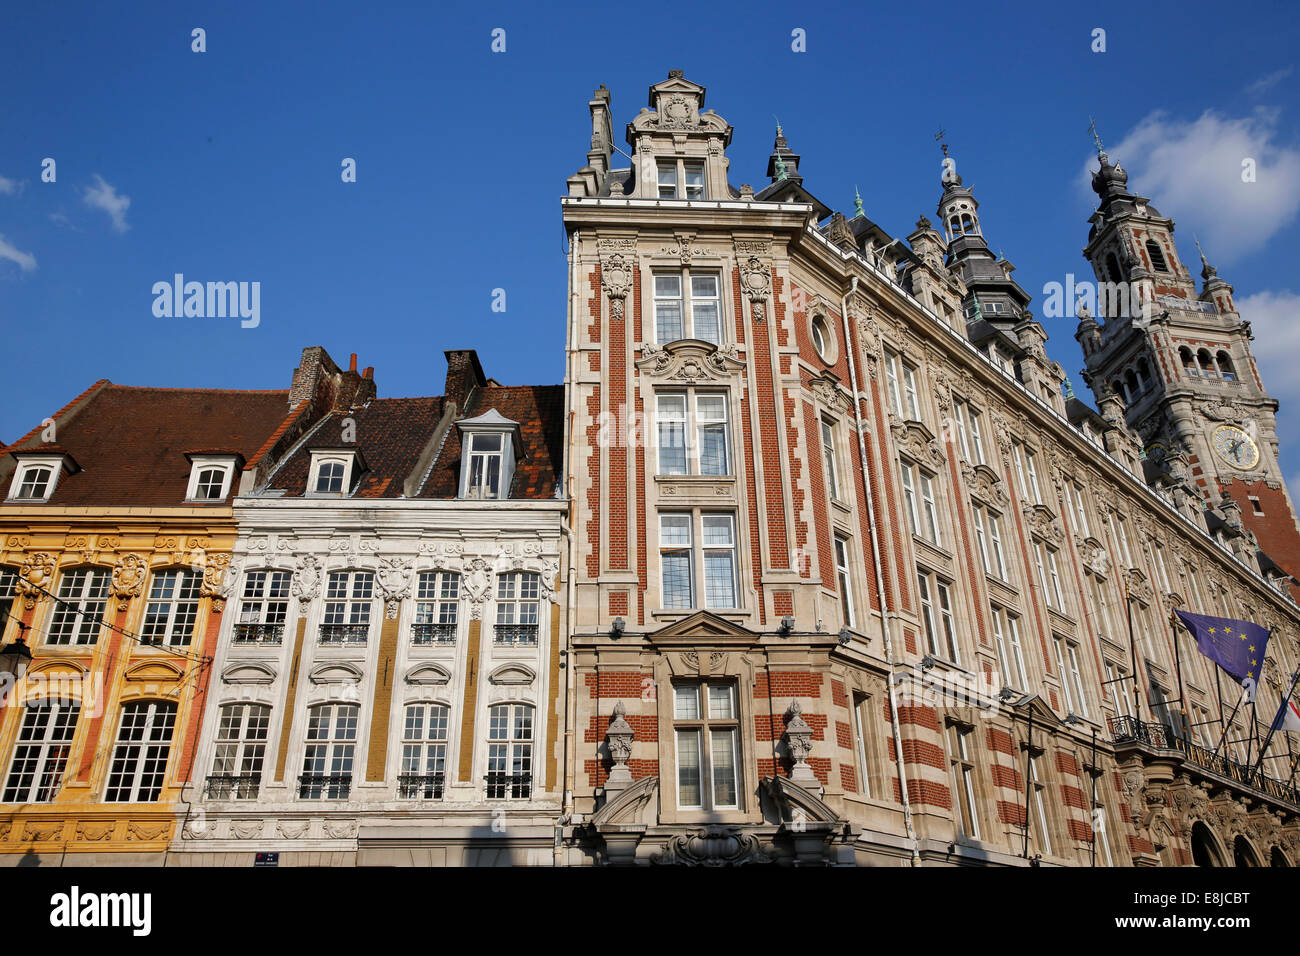 Lille Chamber of Commerce. - Stock Image